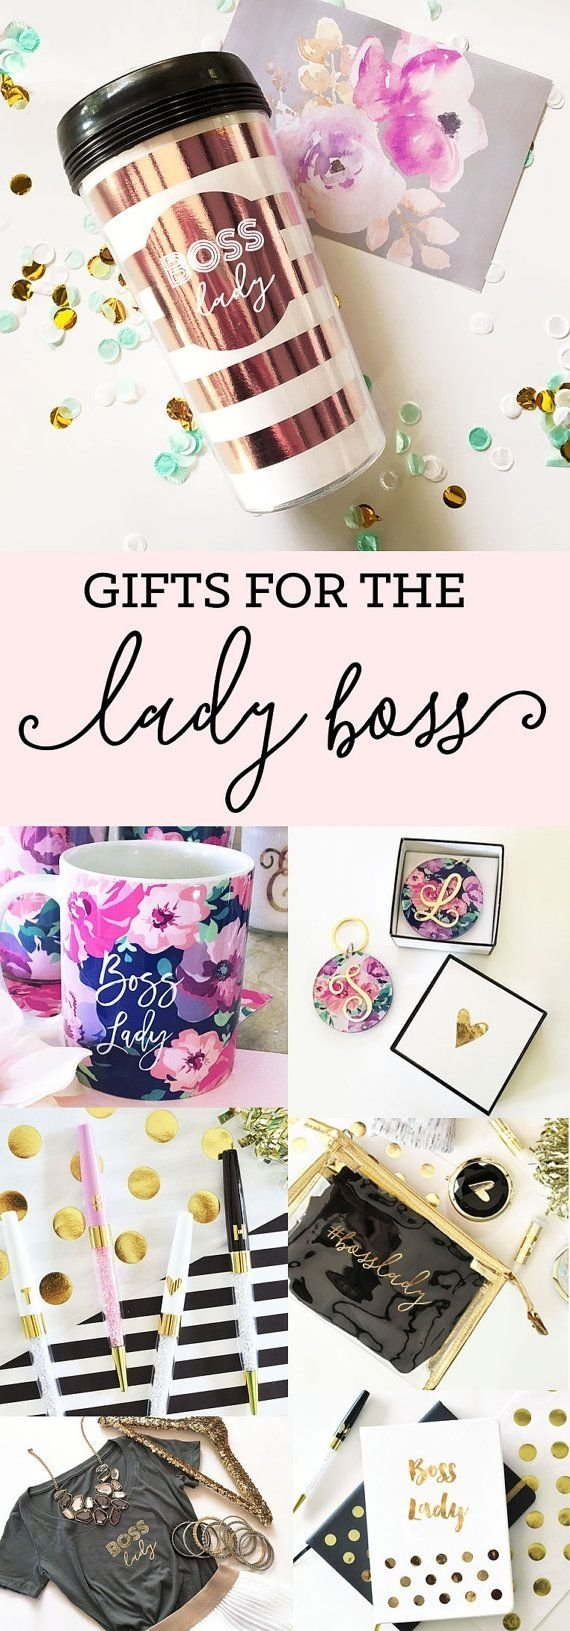 10 Lovable Holiday Gift Ideas For Boss